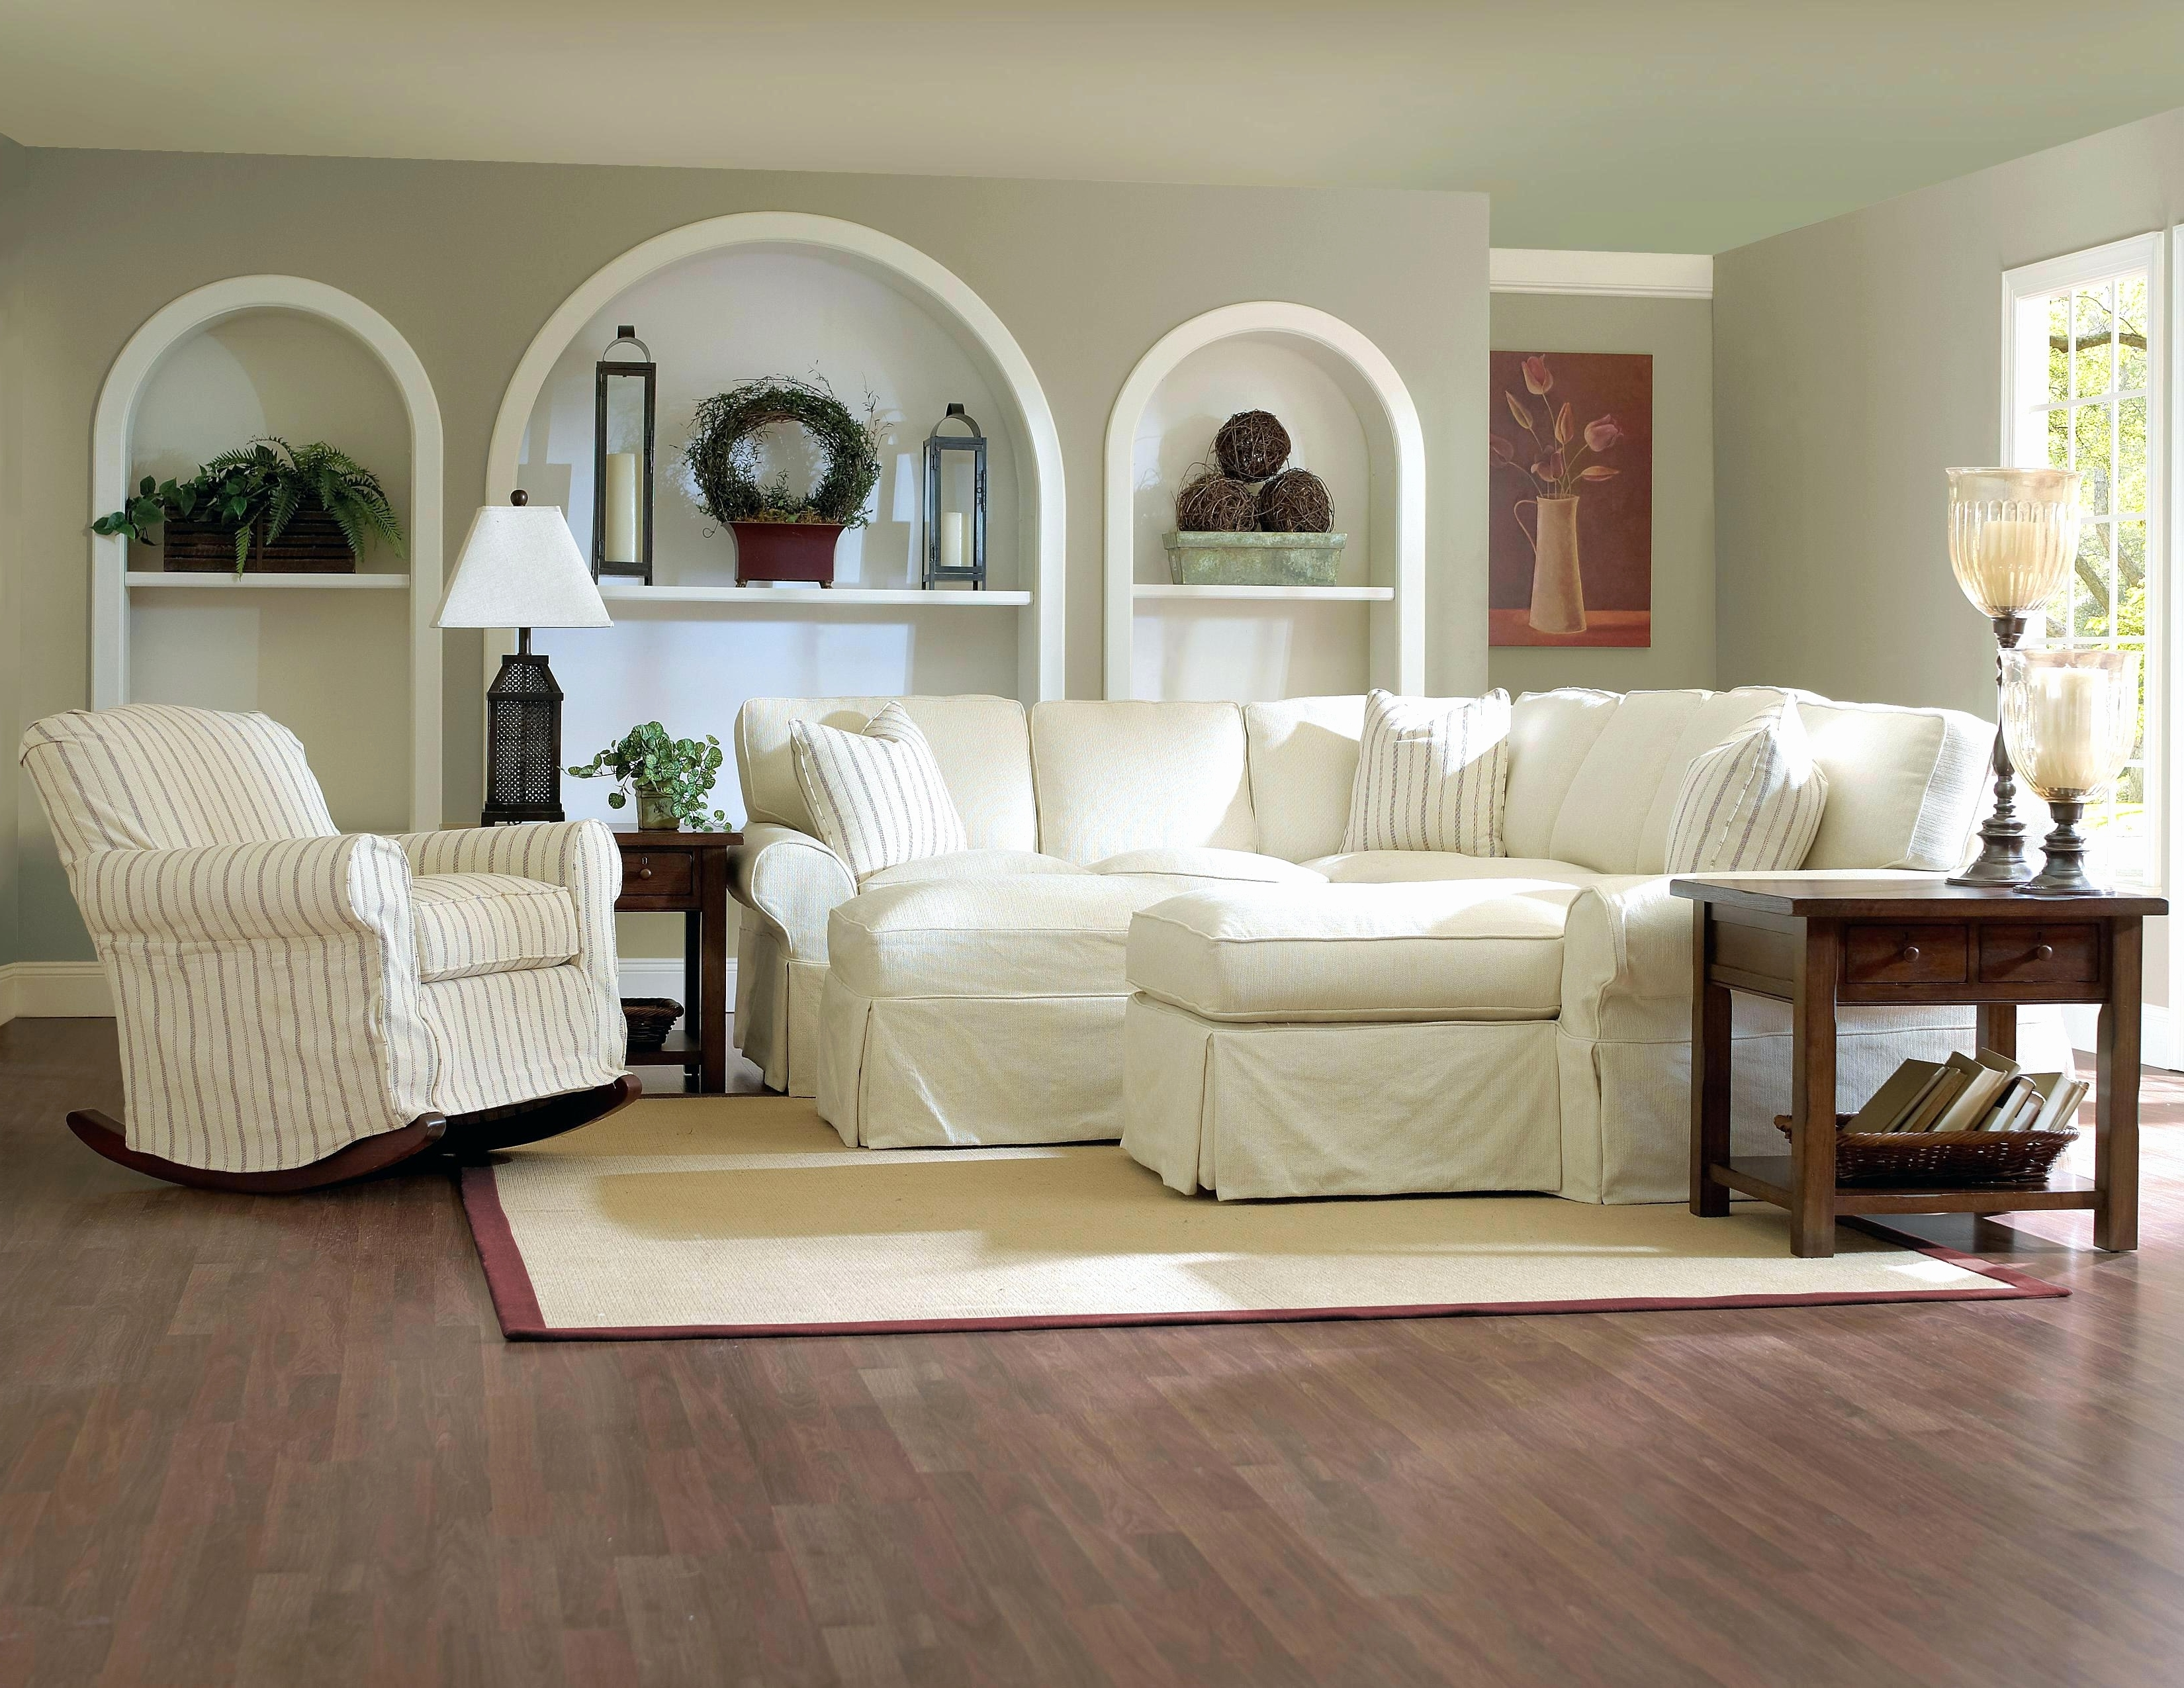 Fashionable Pottery Barn Sectional Sofas Within Elegant Most Comfortable Pottery Barn Sofa 2018 – Couches And (View 2 of 20)